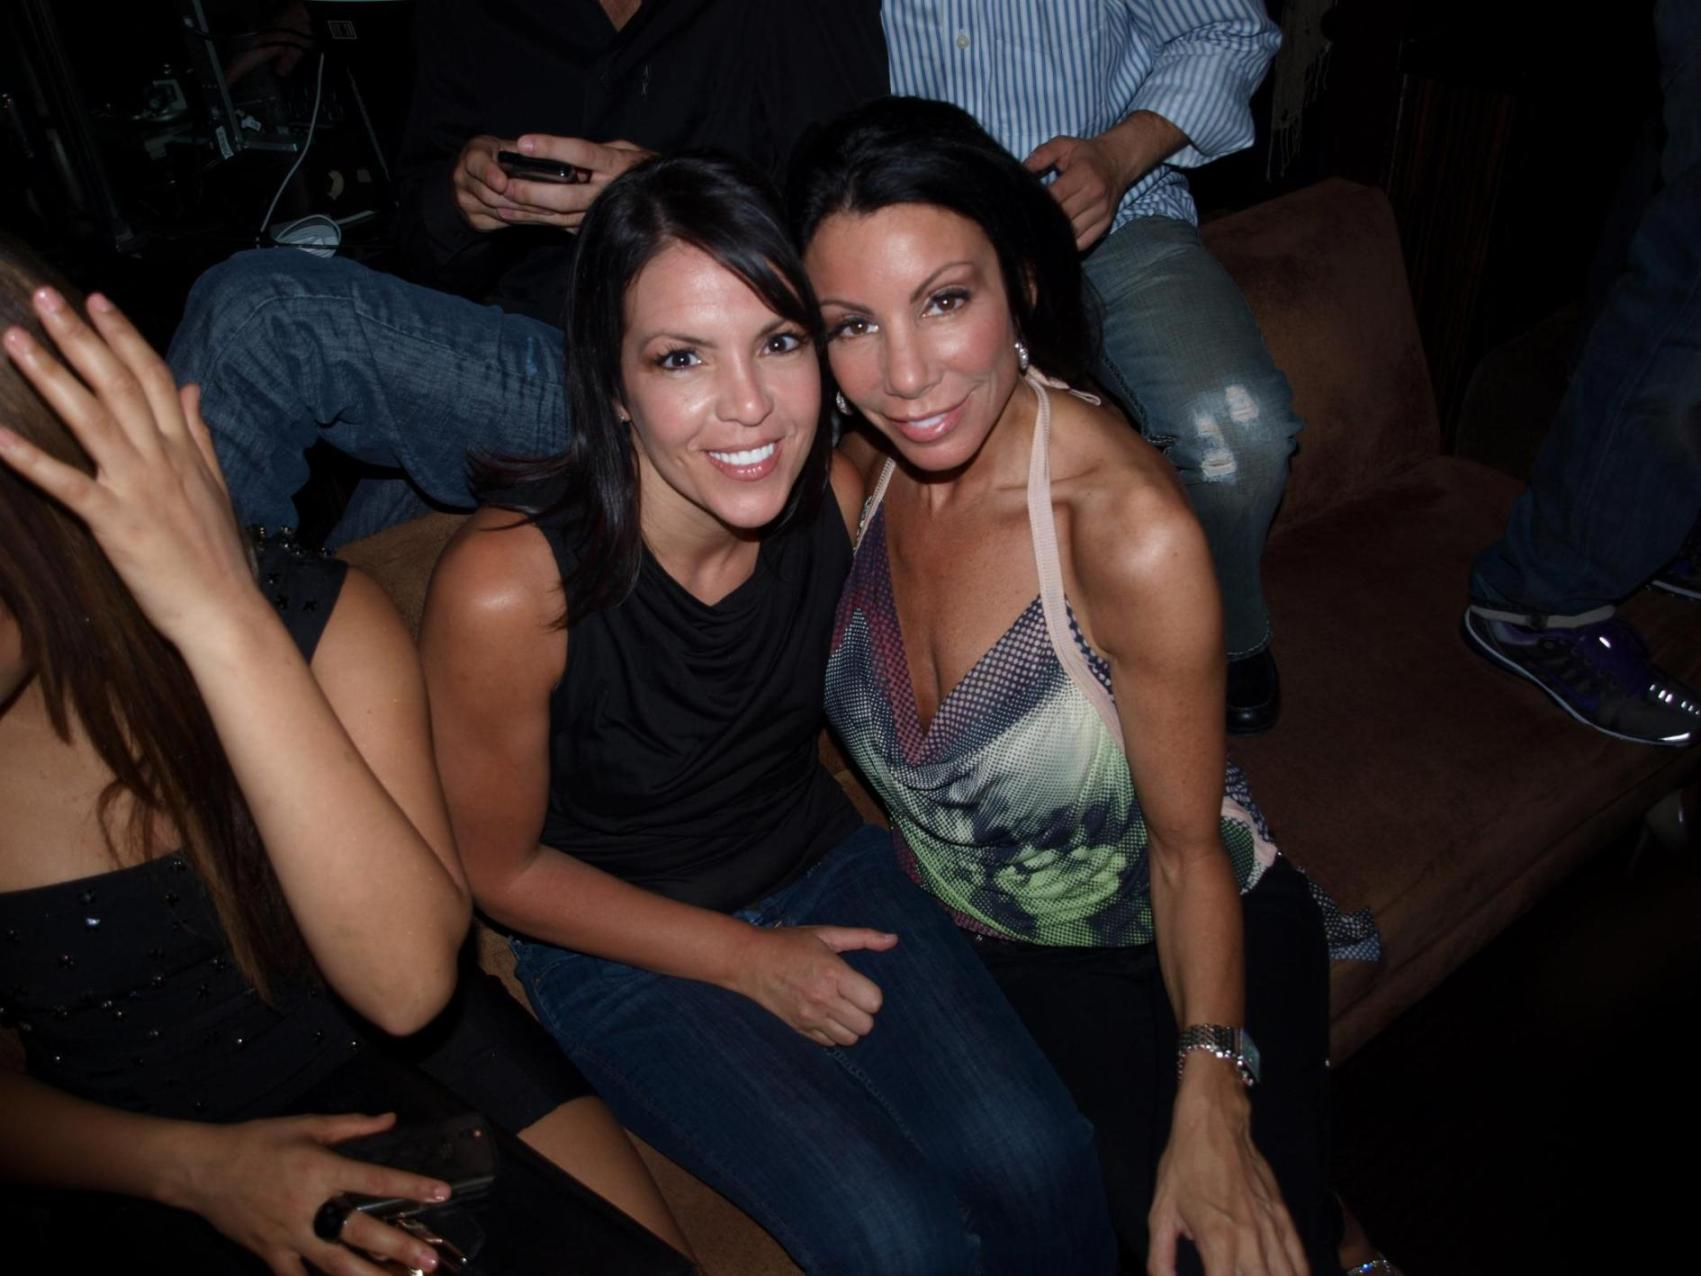 Danielle Staub + Lori Michaels Still Enjoying Each Other's Company (And The Attention It Brings)